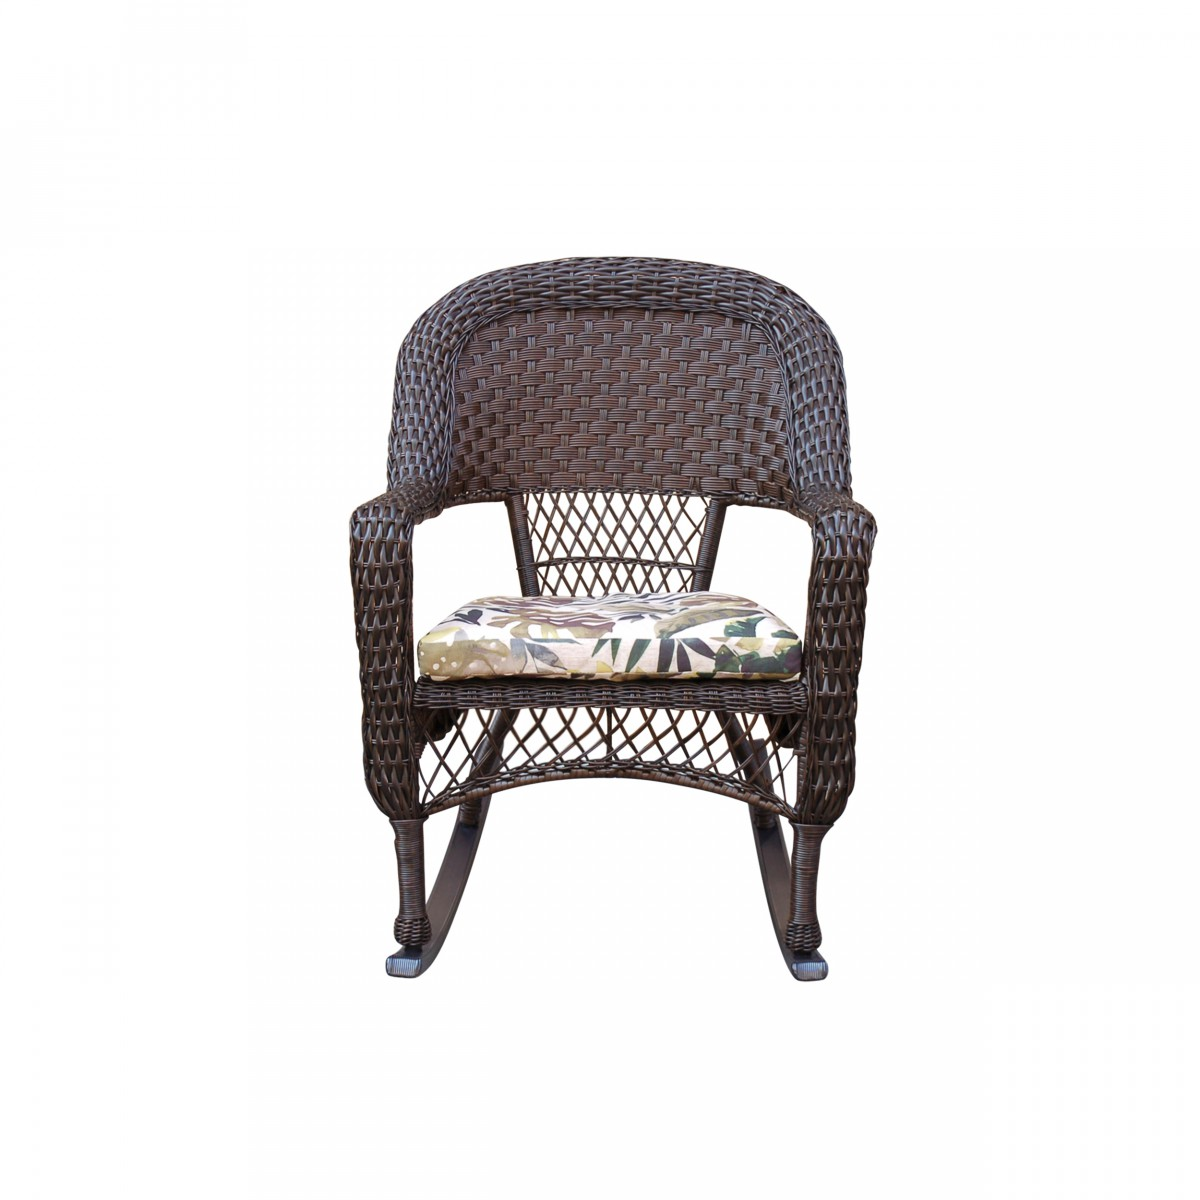 Excellent Resin Wicker Rocking Chair With 2 In Seat Cushion And Aluminum Glider Machost Co Dining Chair Design Ideas Machostcouk